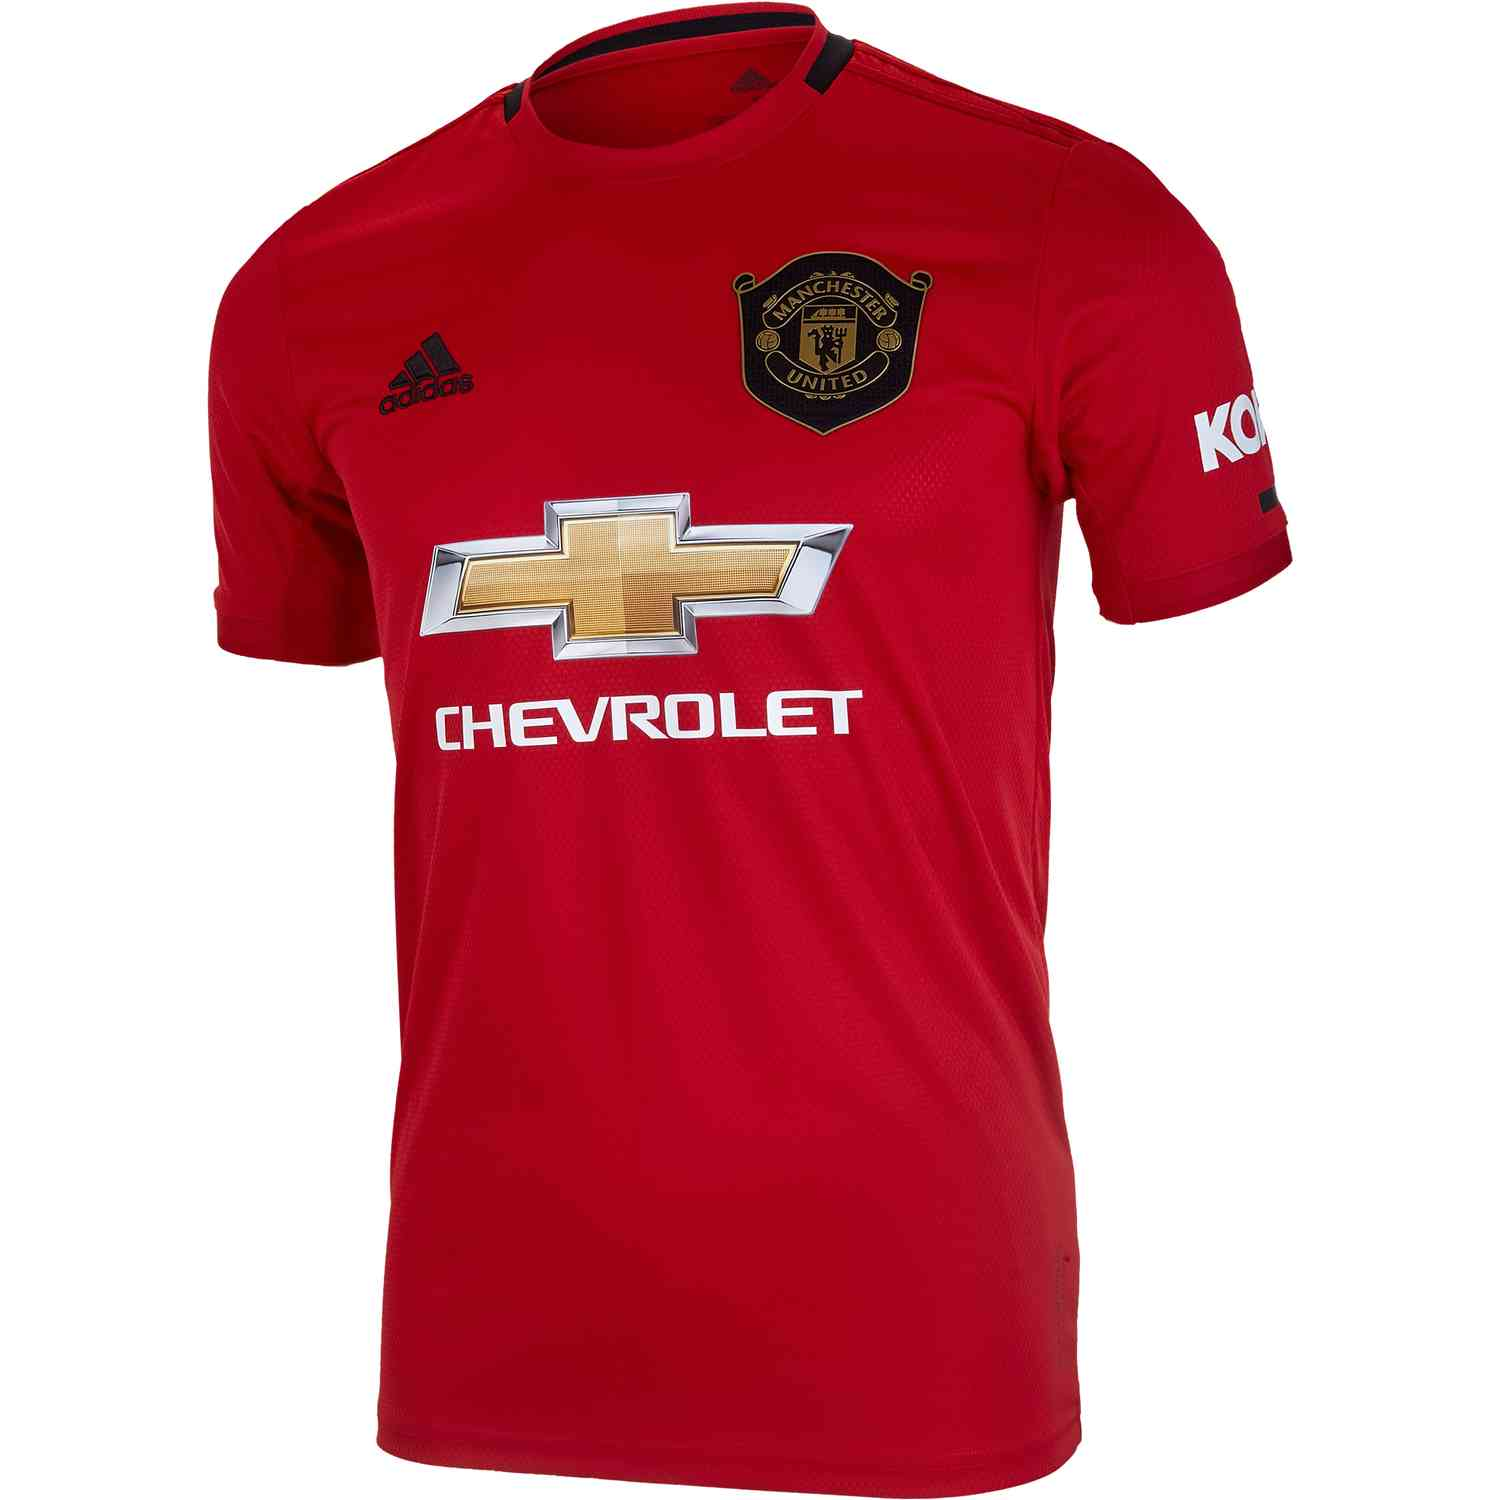 2019/20 adidas Manchester United Home Jersey - SoccerPro